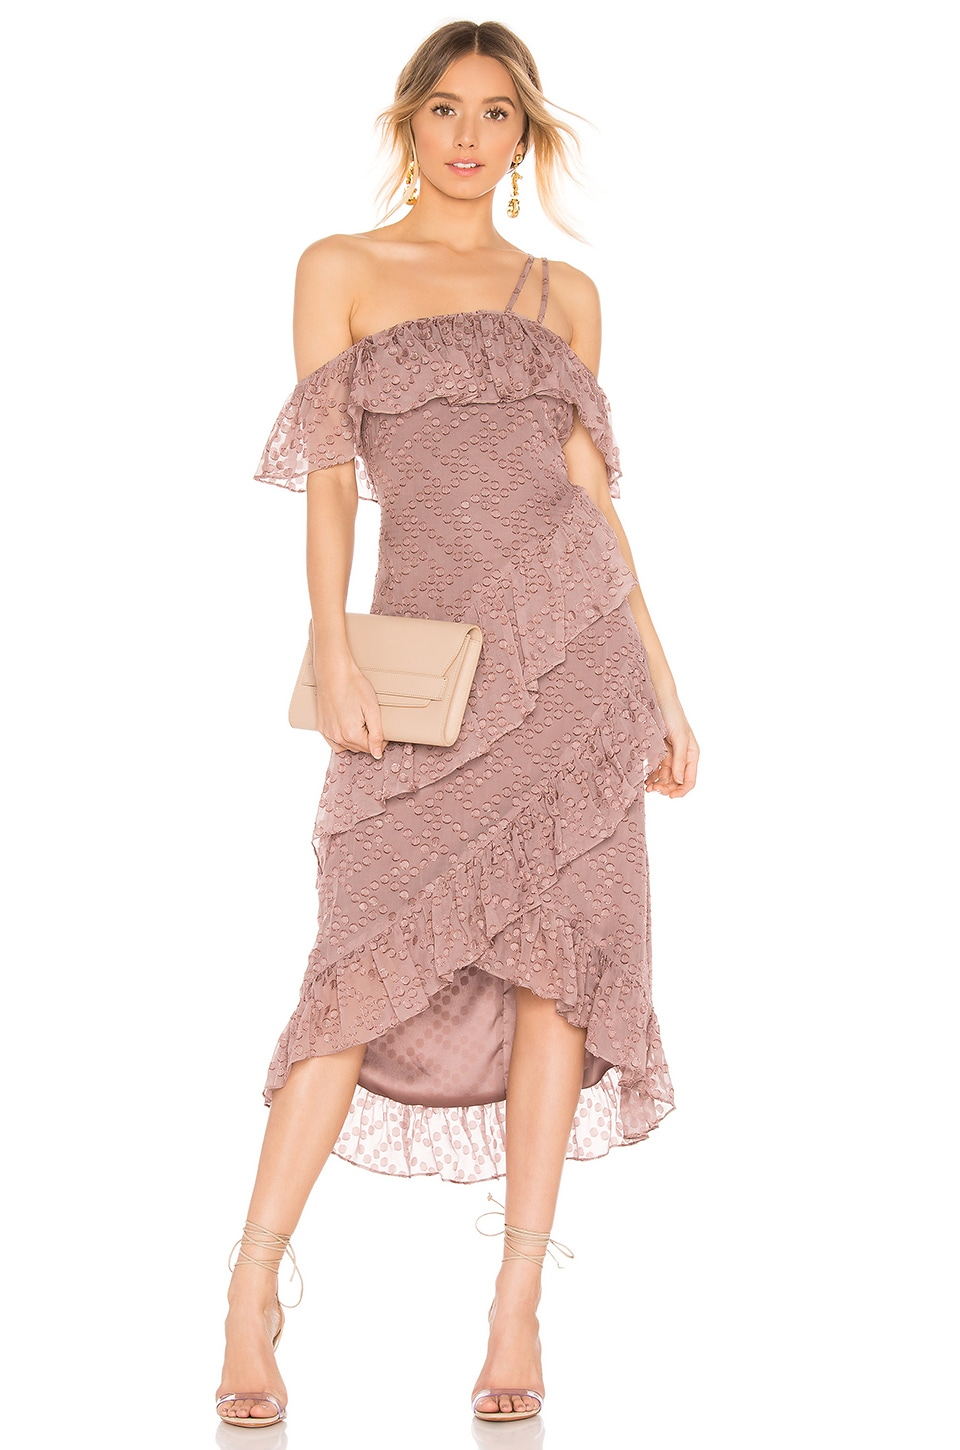 House of Harlow 1960 x REVOLVE Reno Dress in Mauve Purple